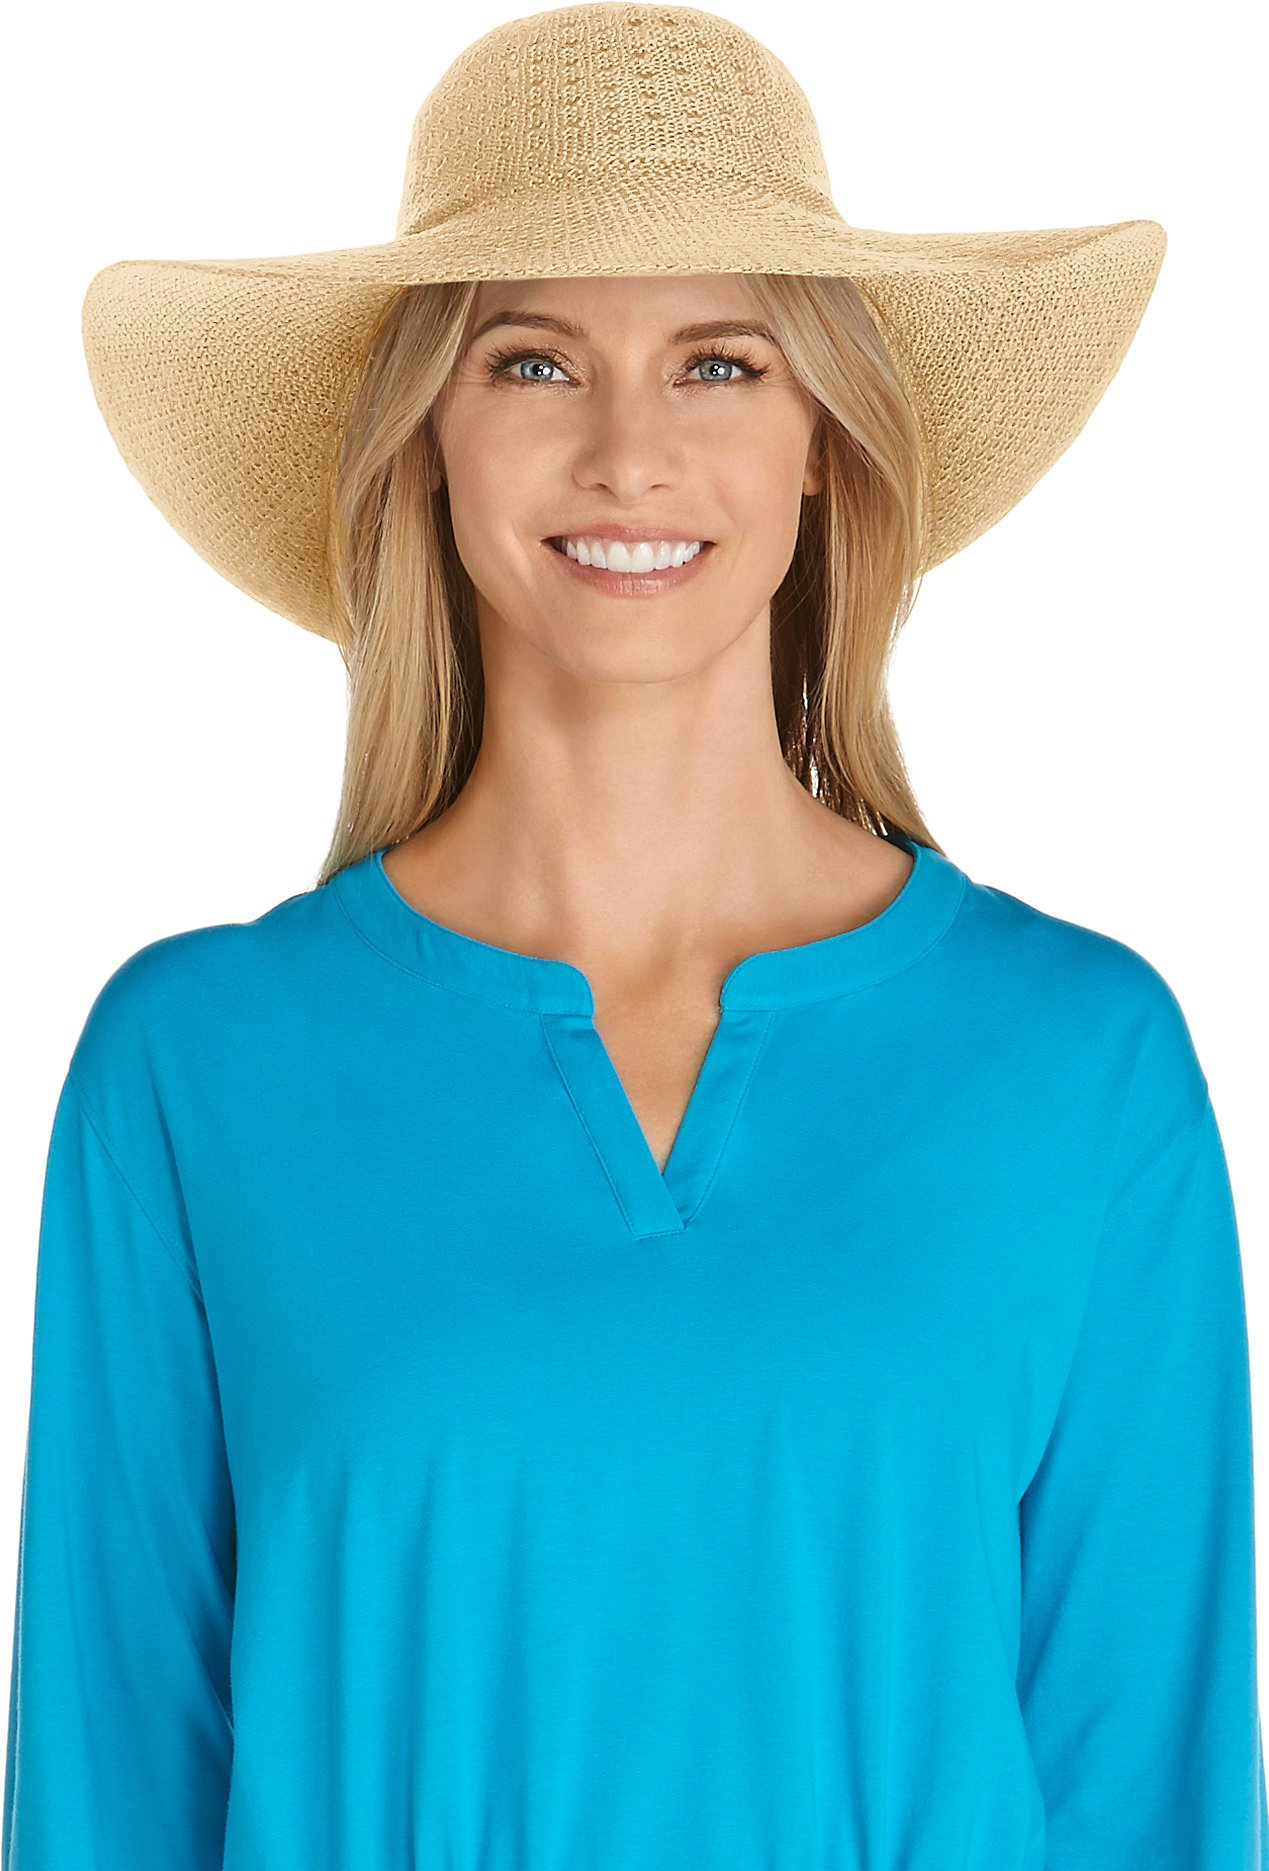 Coolibar UPF 50+ Women's Packable Wide Brim Hat - Sun Protective (One Size- Natural)